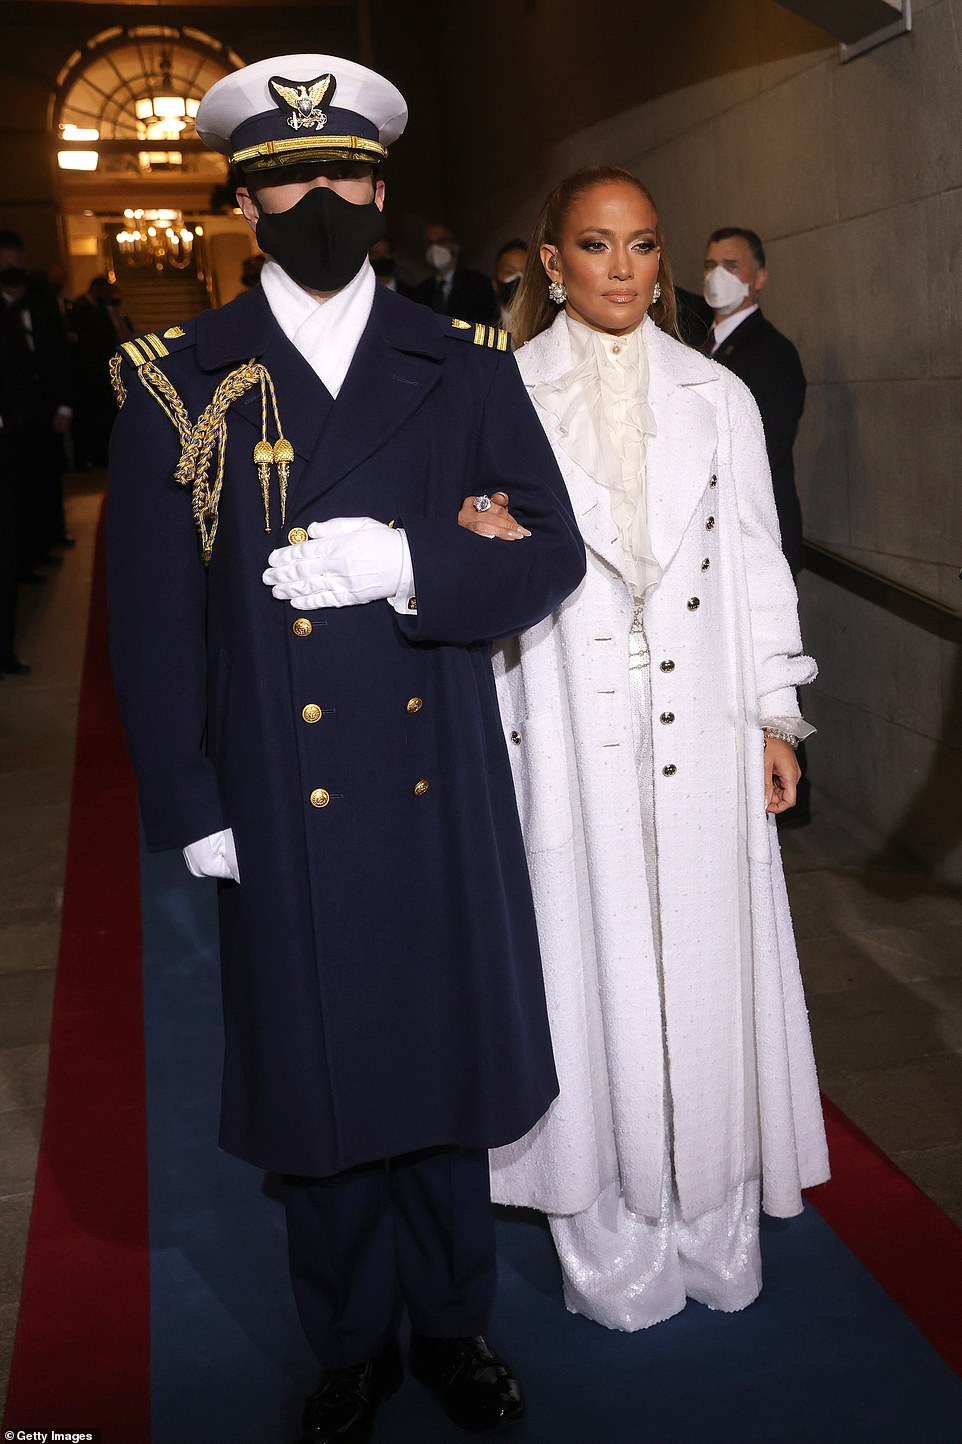 Jennifer Lopez is escorted to the stage for her performance. She was dressed head-to-toe in white Chanel